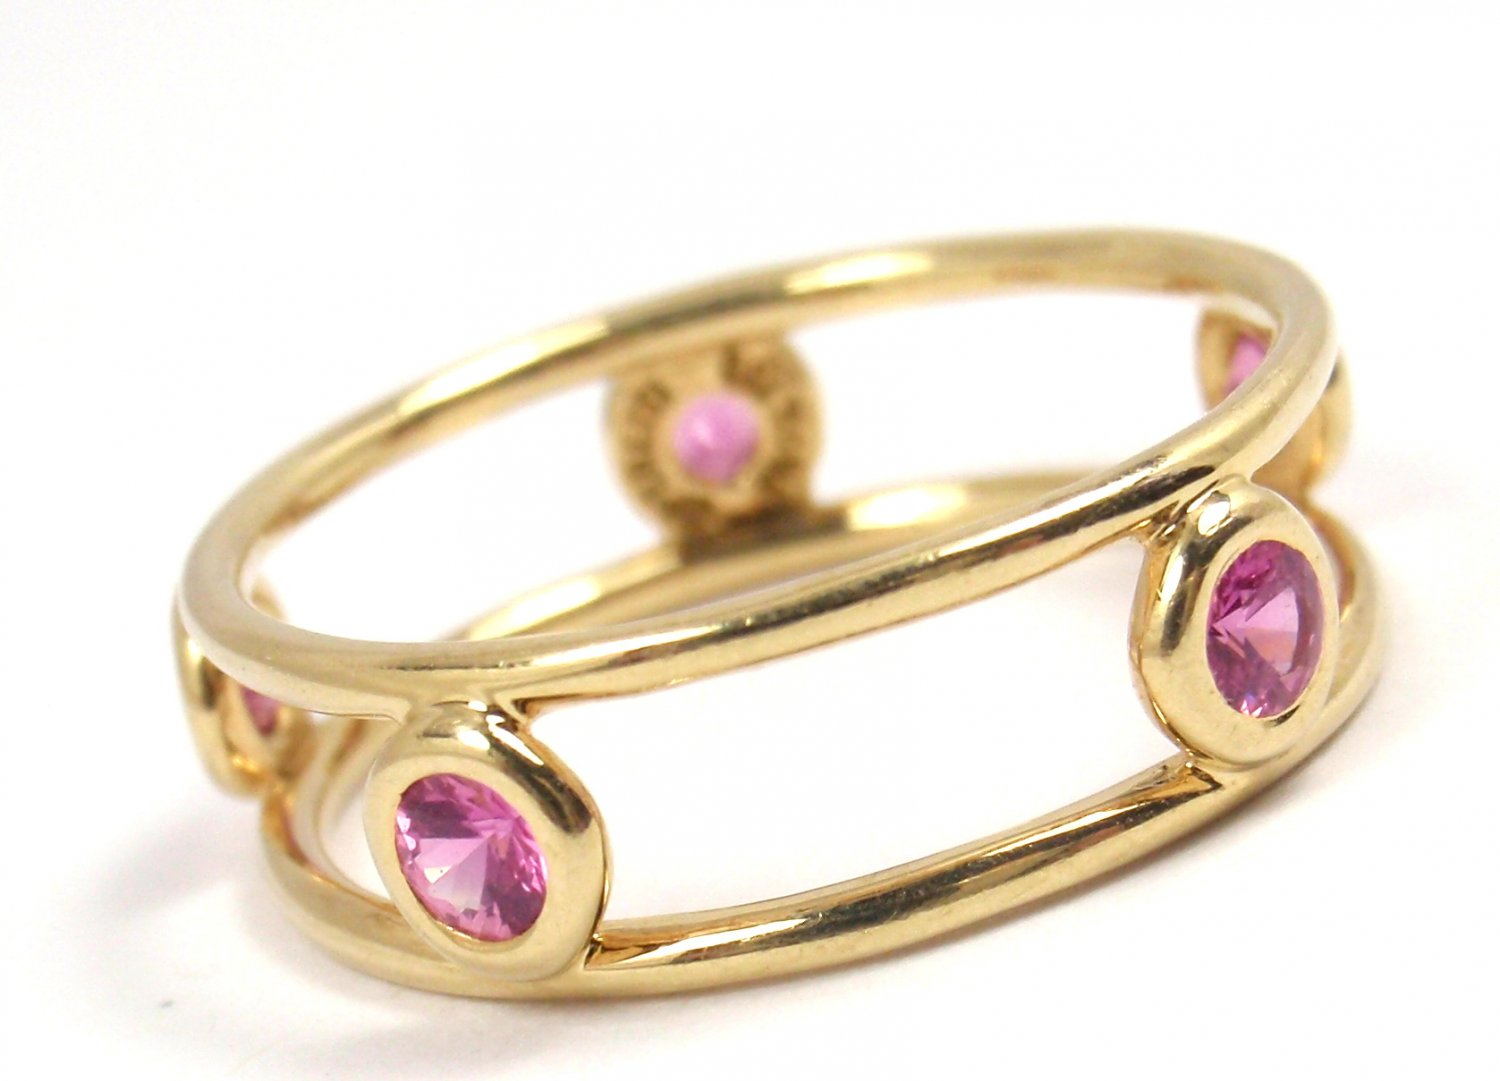 Tiffany & Co Peretti 18K Gold Color By the Yard Double Wire Pink Sapphire Ring Size 6